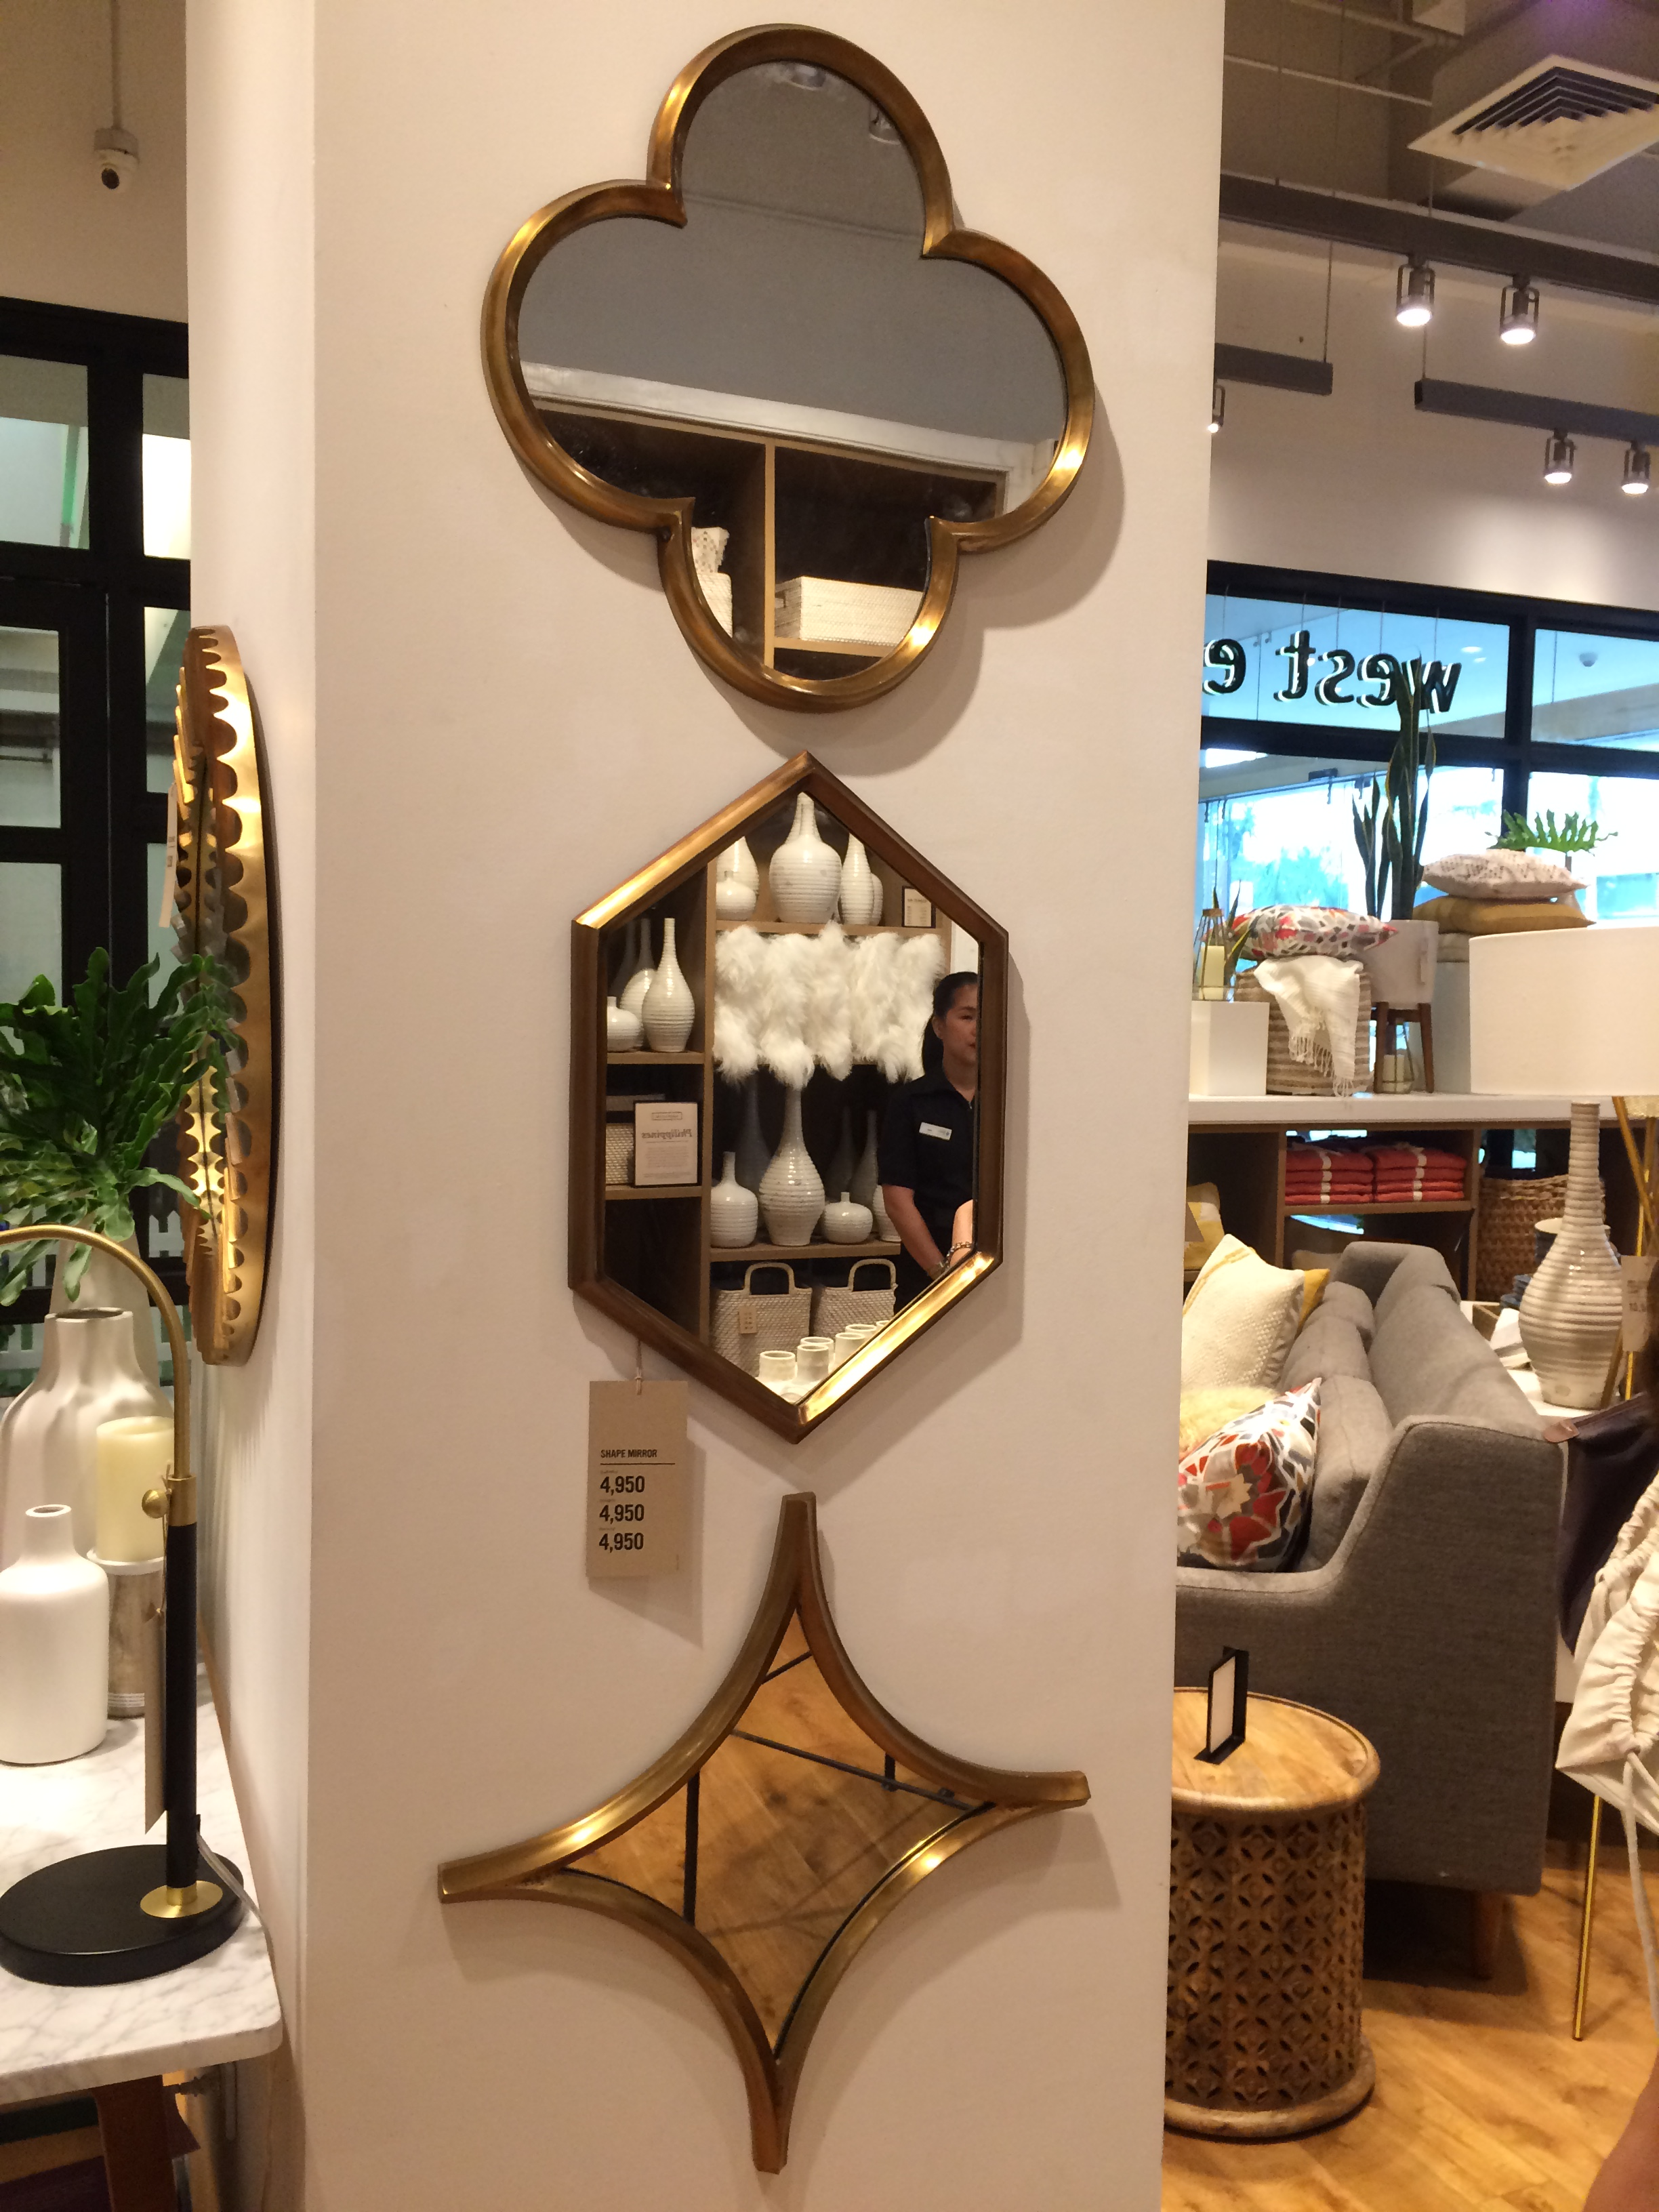 These mirrors would make a great wall accent in an empty hallway wall, or maybe an entryway. Definitely saving up for these.